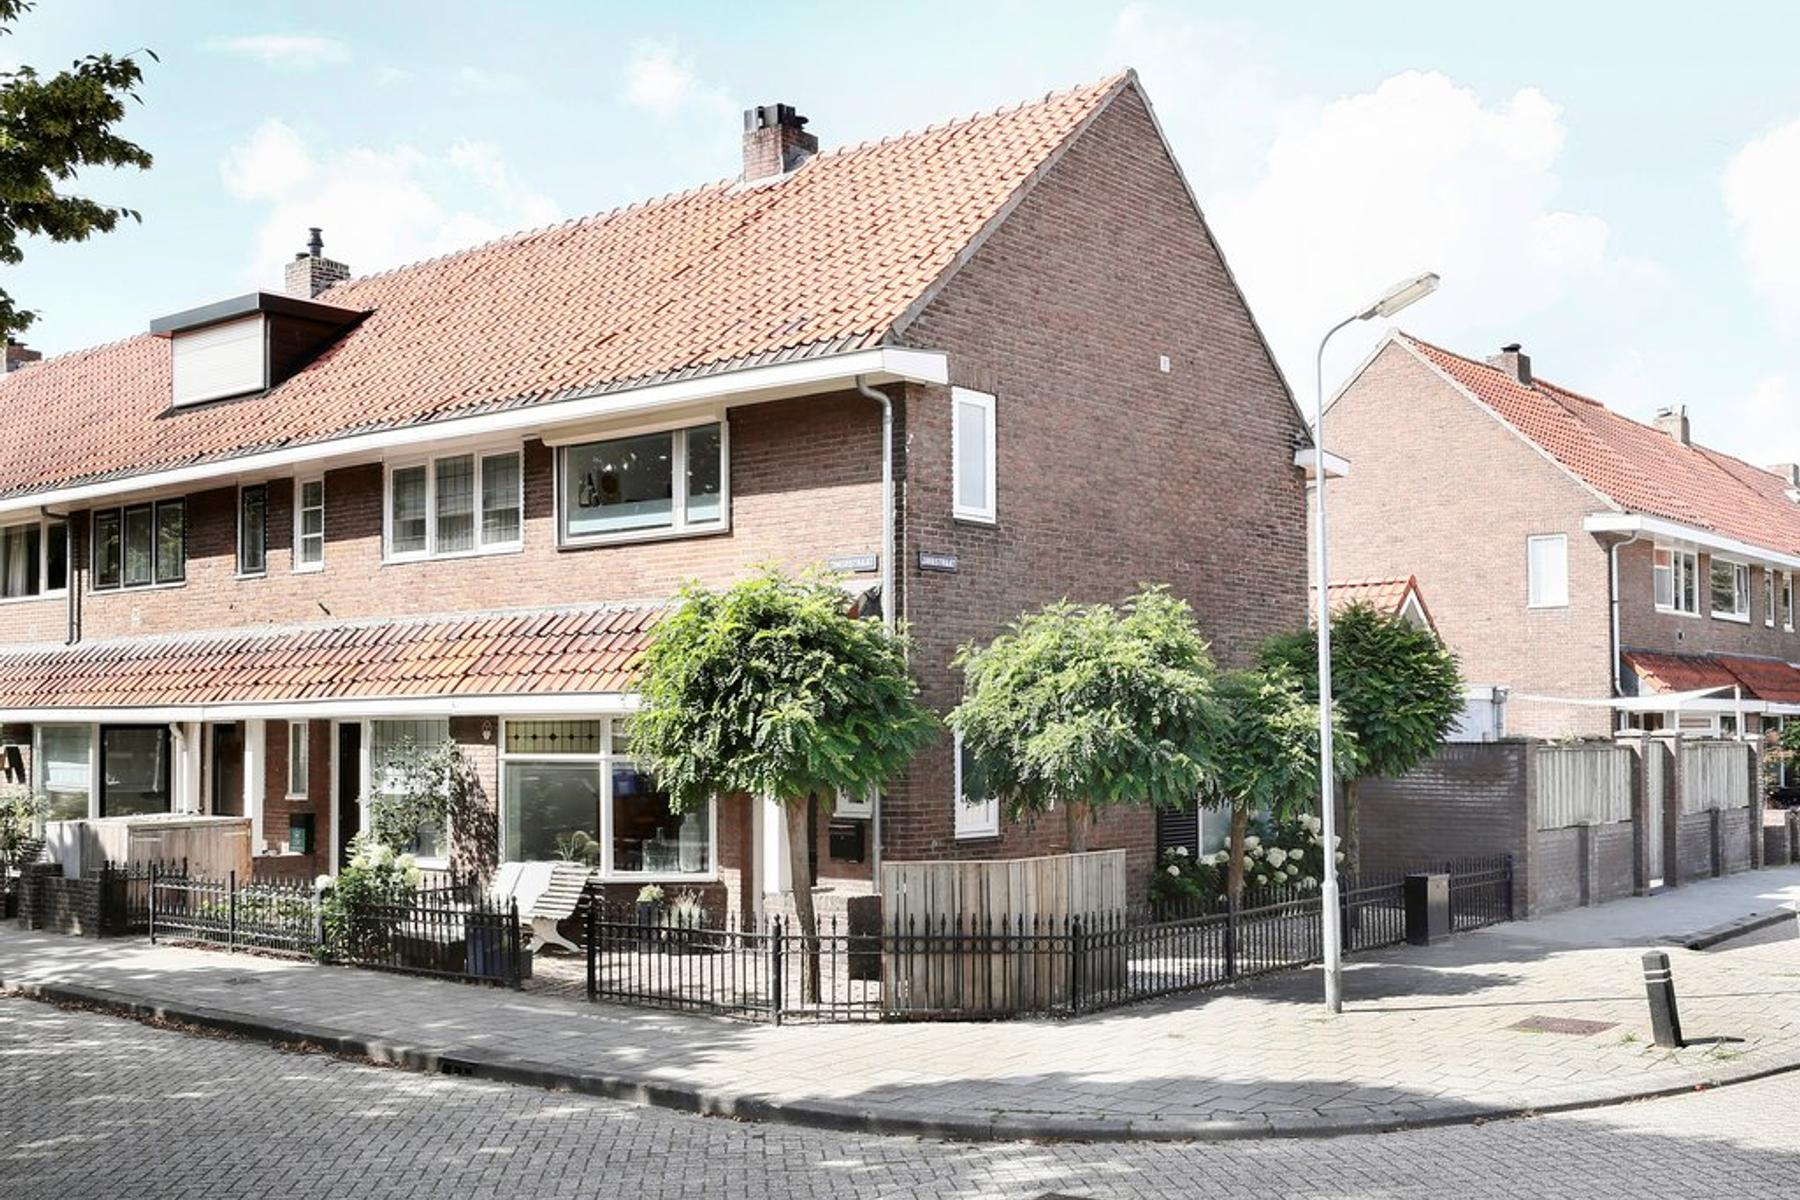 Timorstraat 12 in 'S-Hertogenbosch 5215 AT